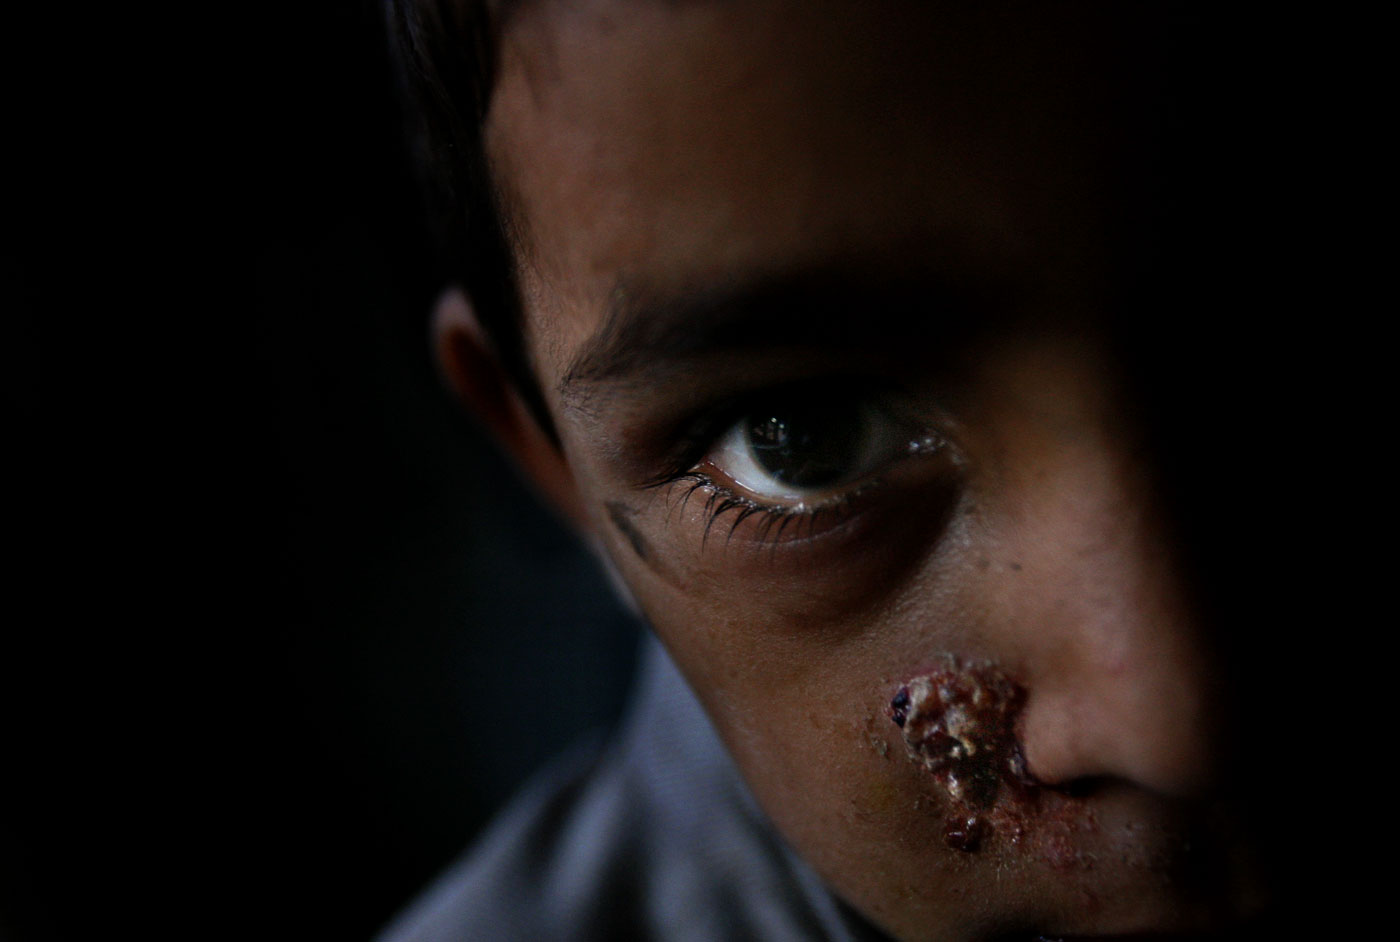 Ishfaq Khan suffers from an infected wound. Many of the orphans in Kashmir don't receive proper health care.